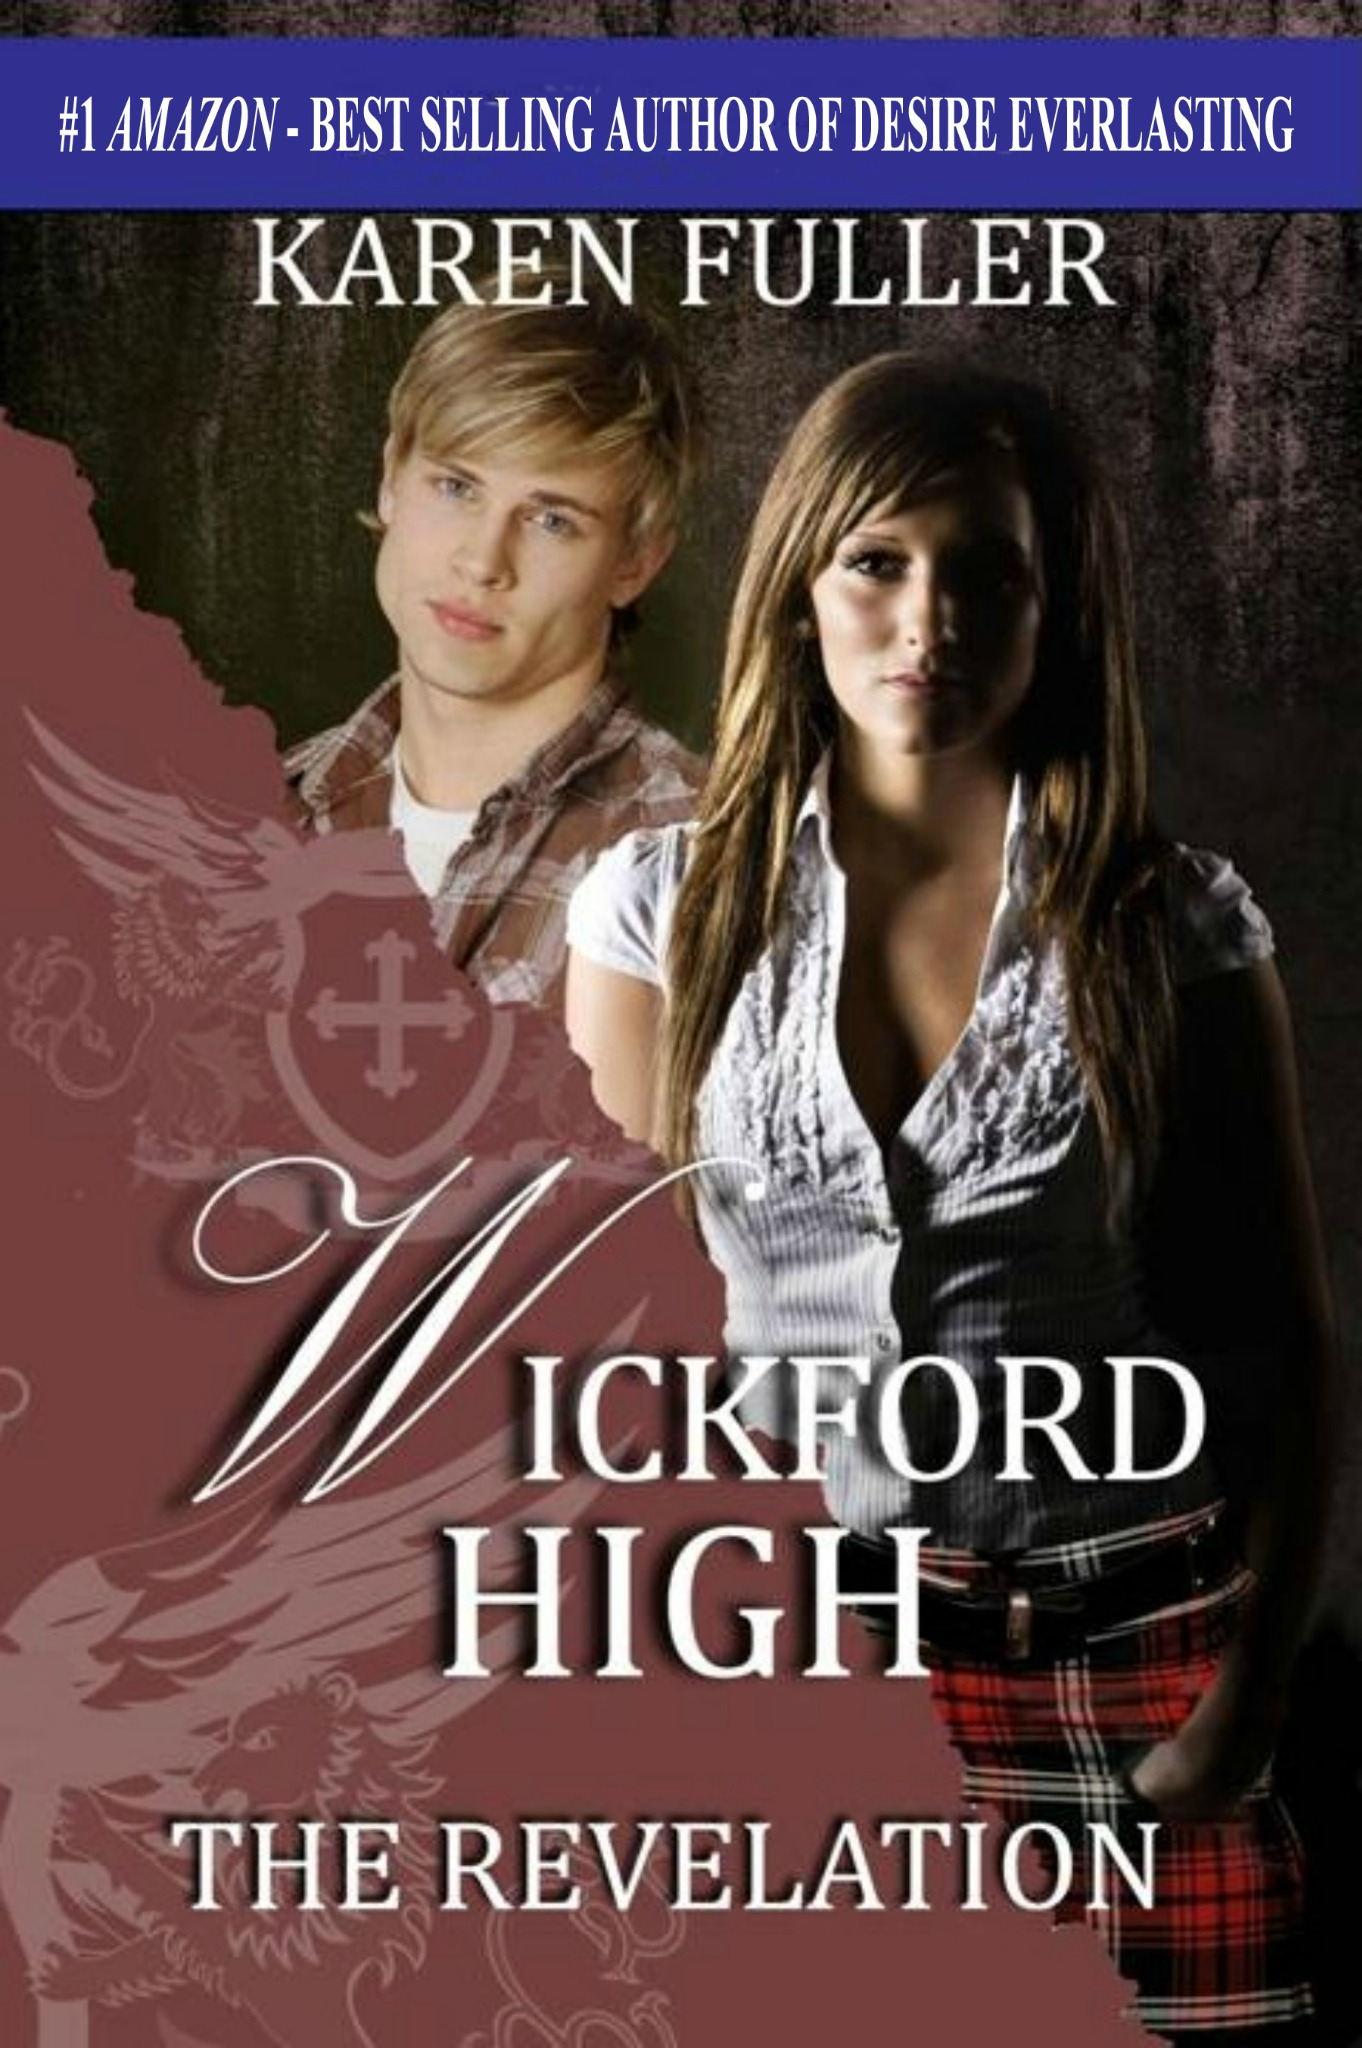 The Revelation - Wickford High Series Book 1